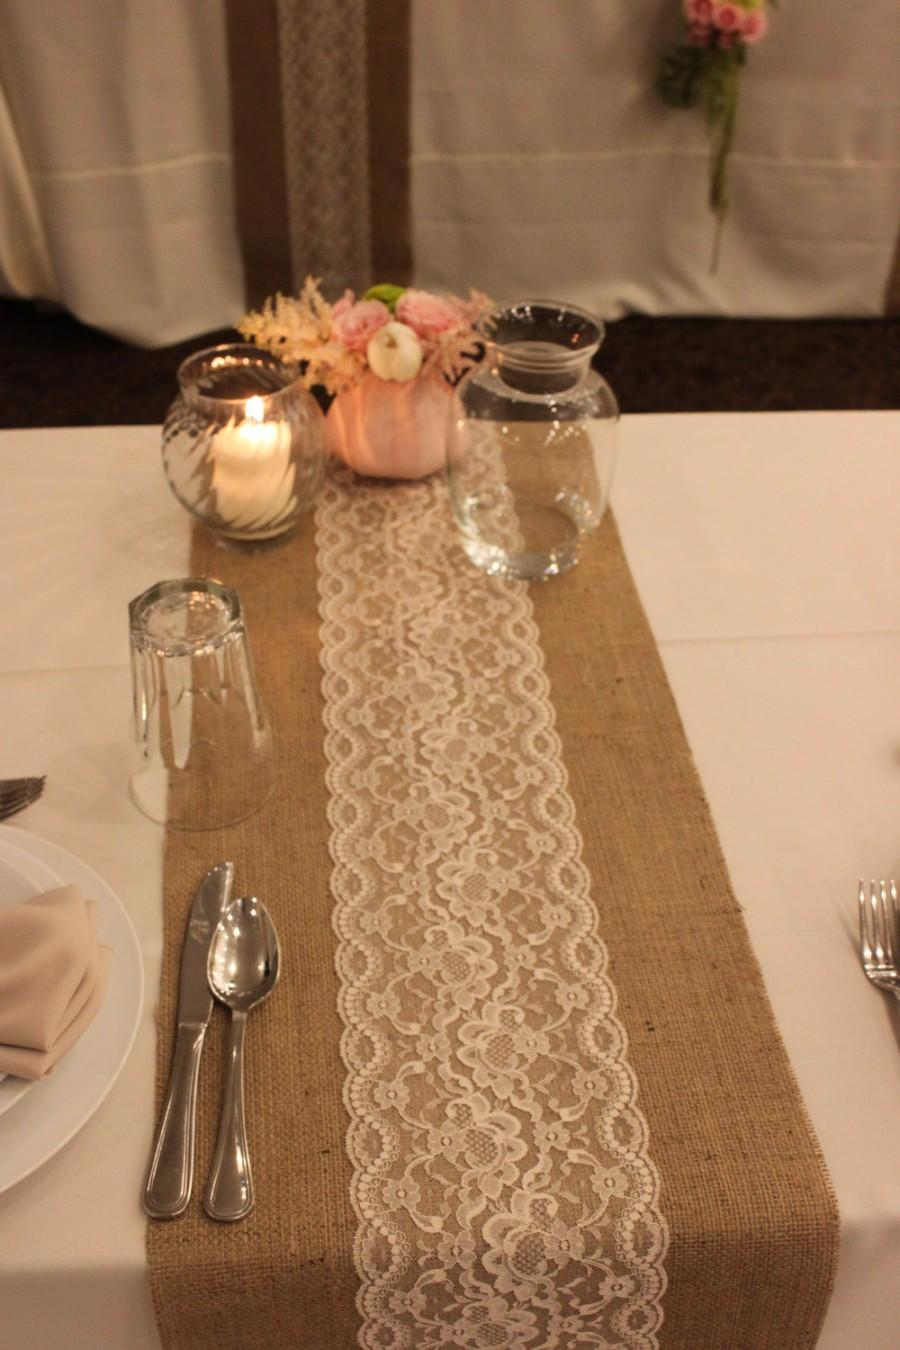 Sale 12 ft 12 x 144 burlap lace table runner wedding decor lace sale 12 ft 12 x 144 burlap lace table runner wedding decor lace burlap wedding table runner ivory junglespirit Gallery